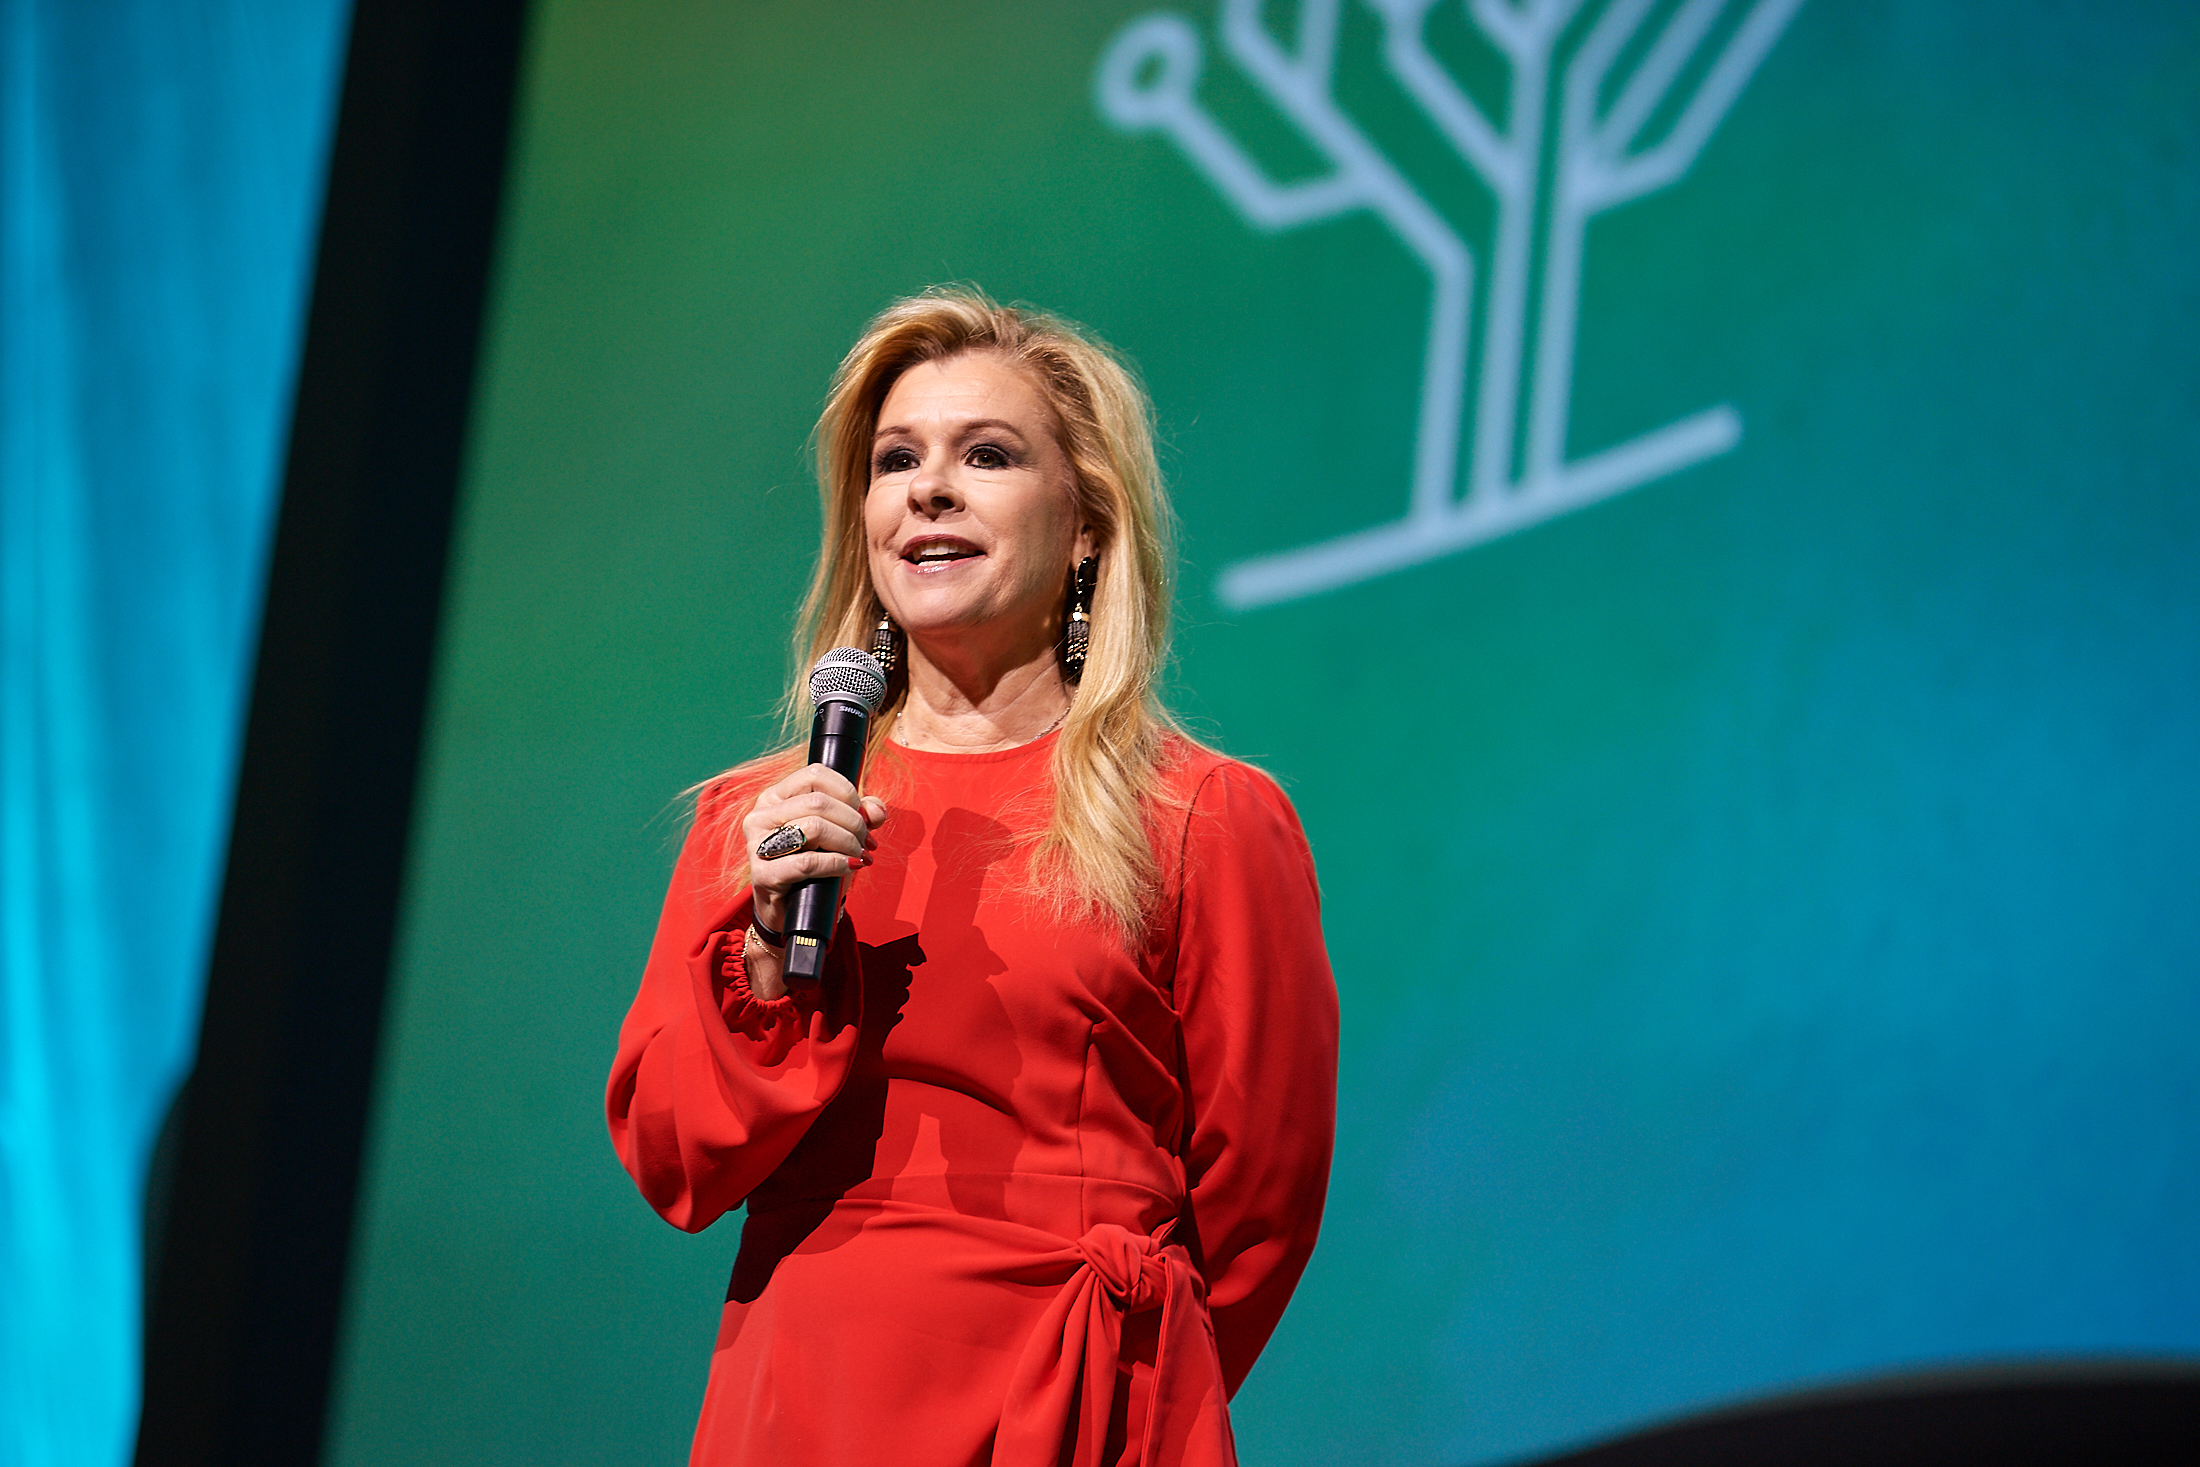 Leigh Anne Tuohy, inspiration behind The Blind Side movie, keynotes at RootsTech 2020 Salt Lake.